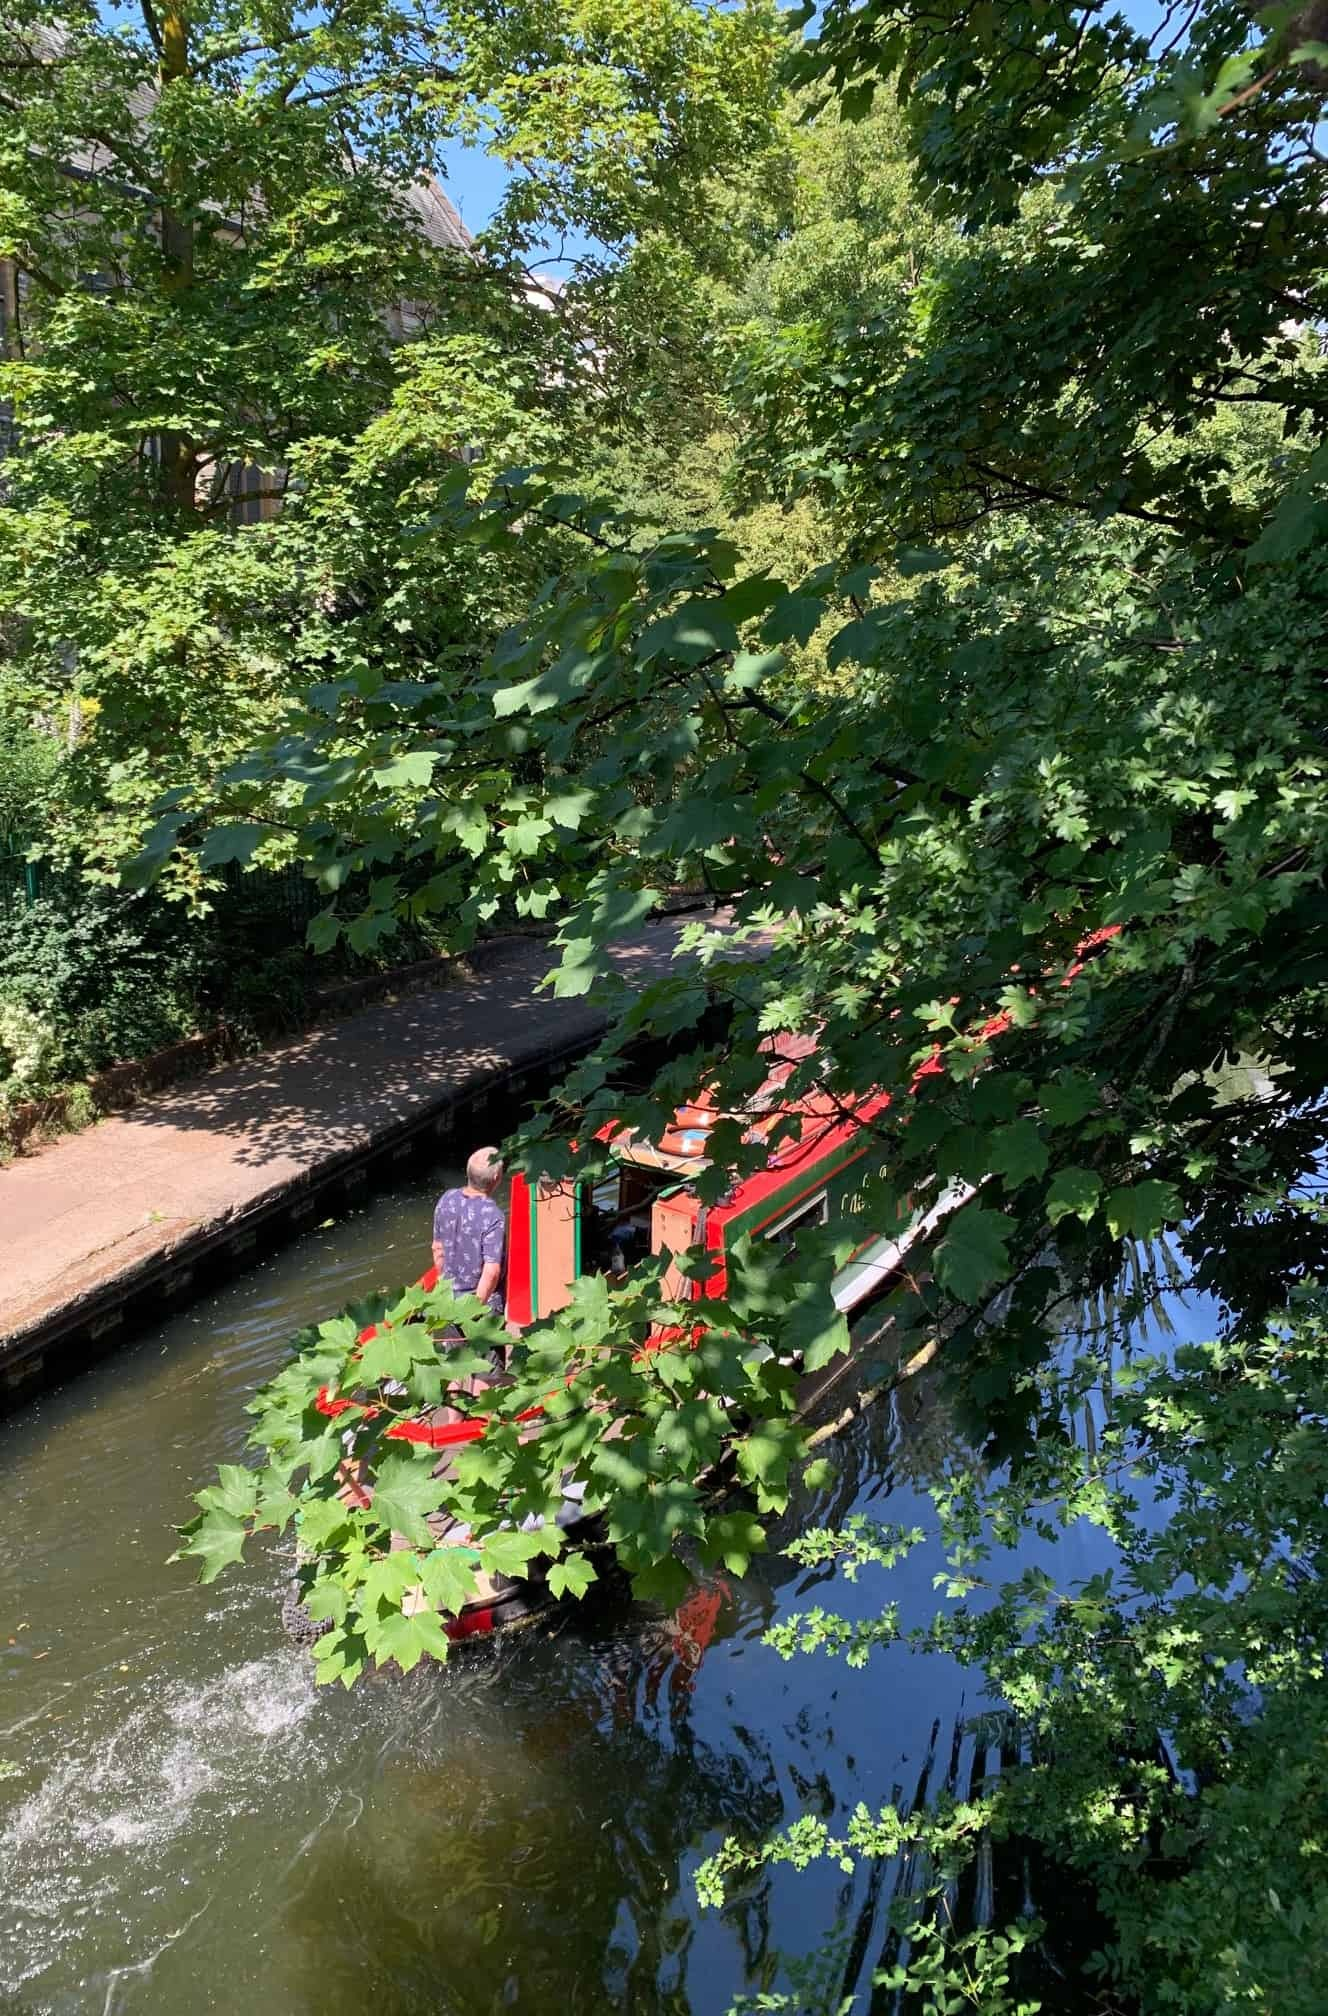 A barge in Regents Canal